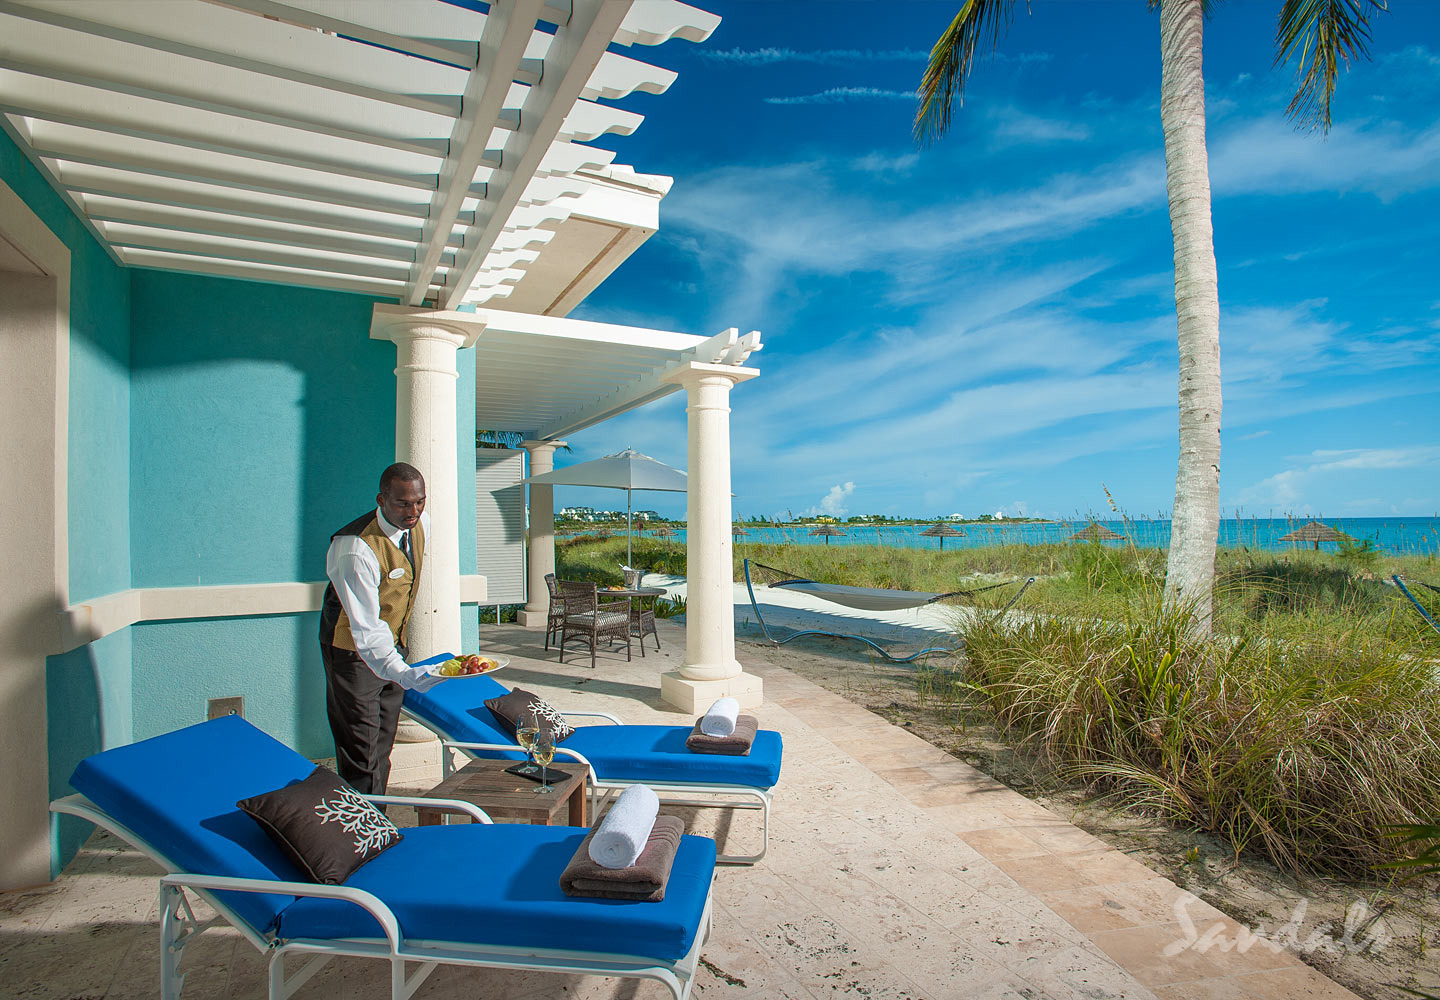 Travel Agency All-Inclusive Resort Sandals Emerald Bay 056